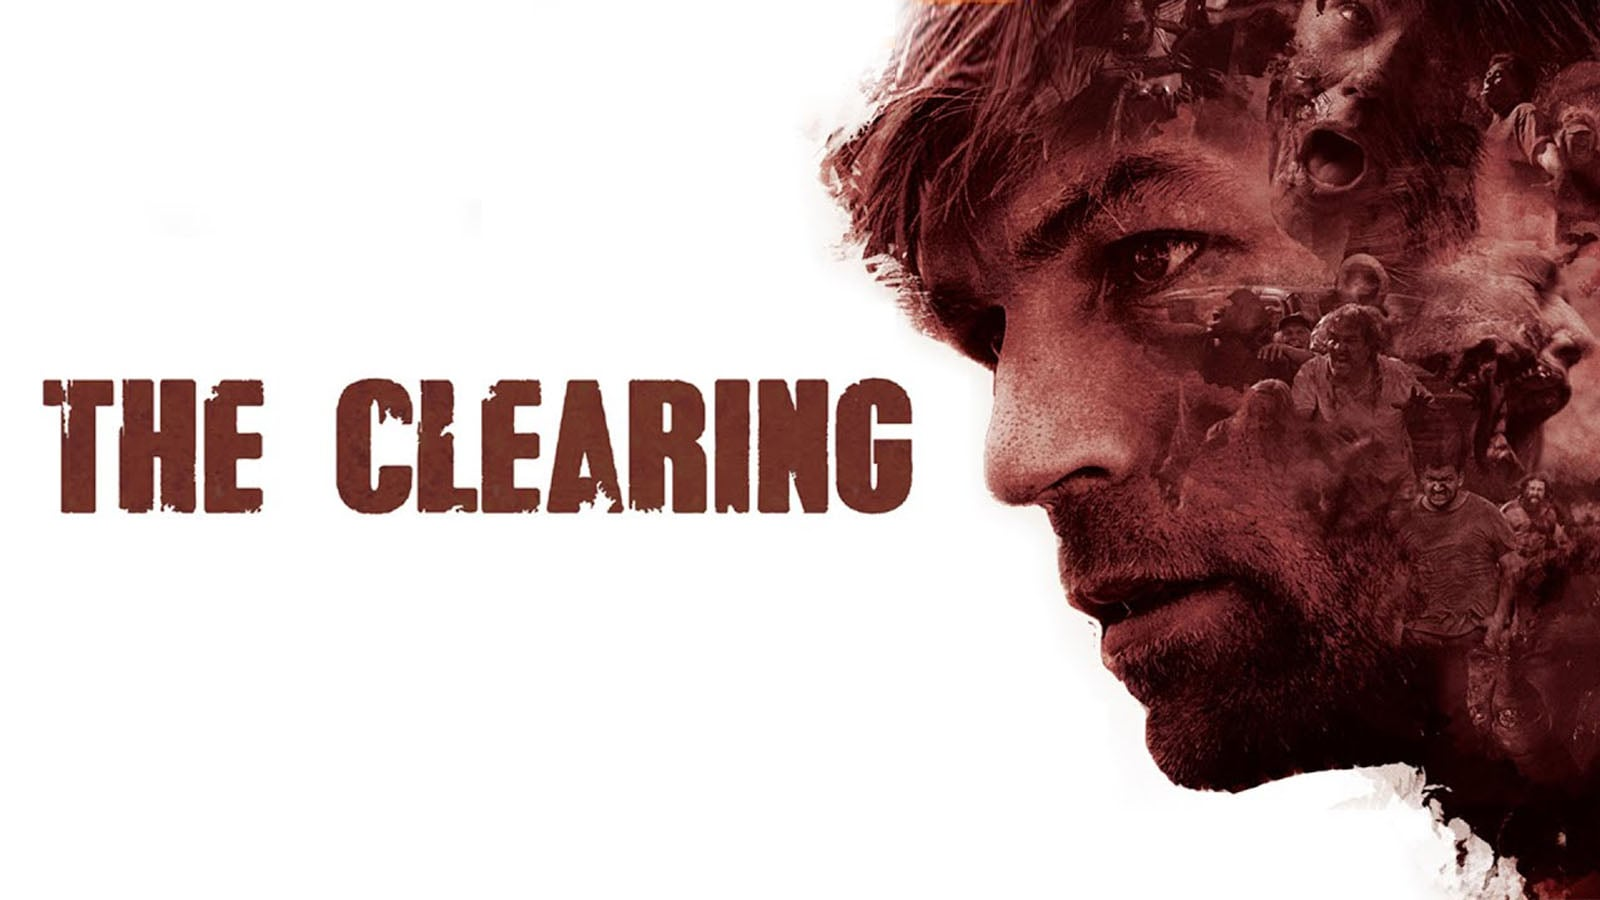 Regarder The Clearing en streaming gratuit